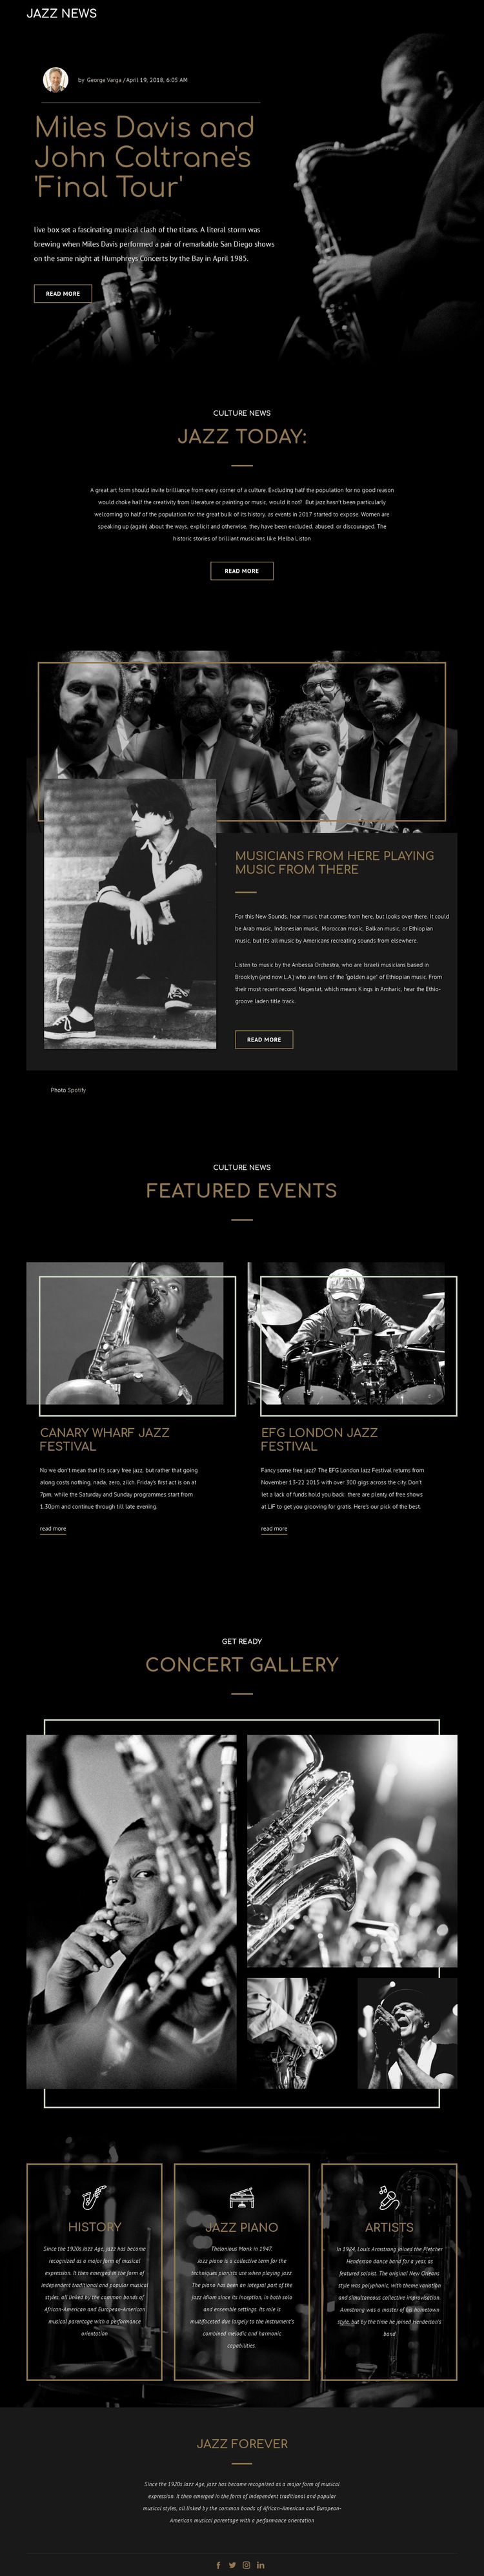 Legengs of jazz music Website Builder